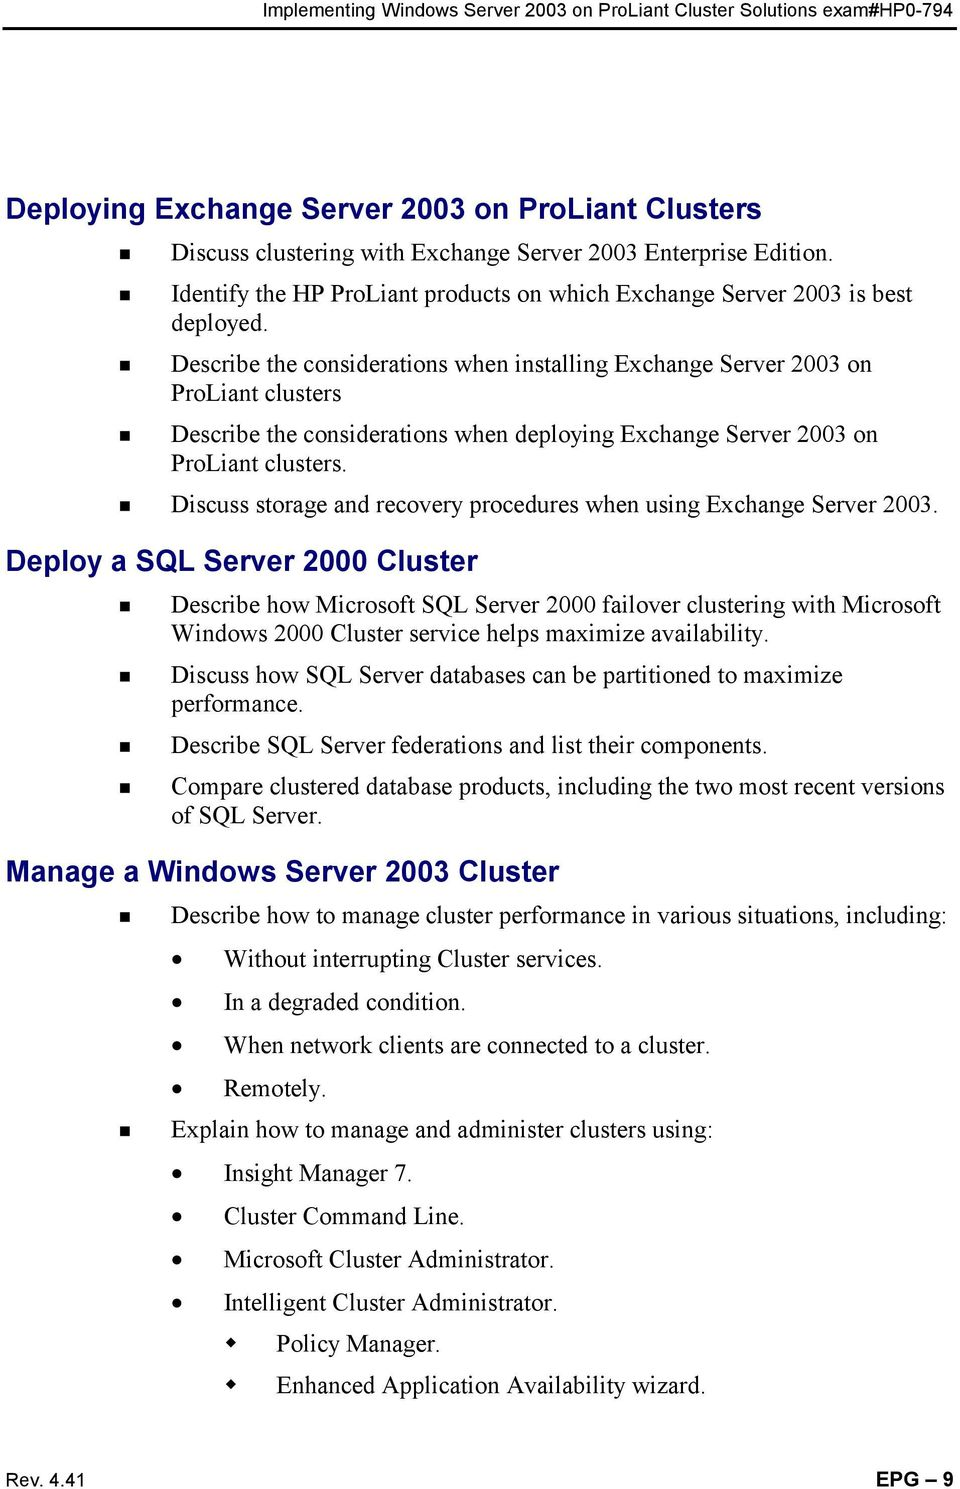 Discuss storage and recovery procedures when using Exchange Server 2003.